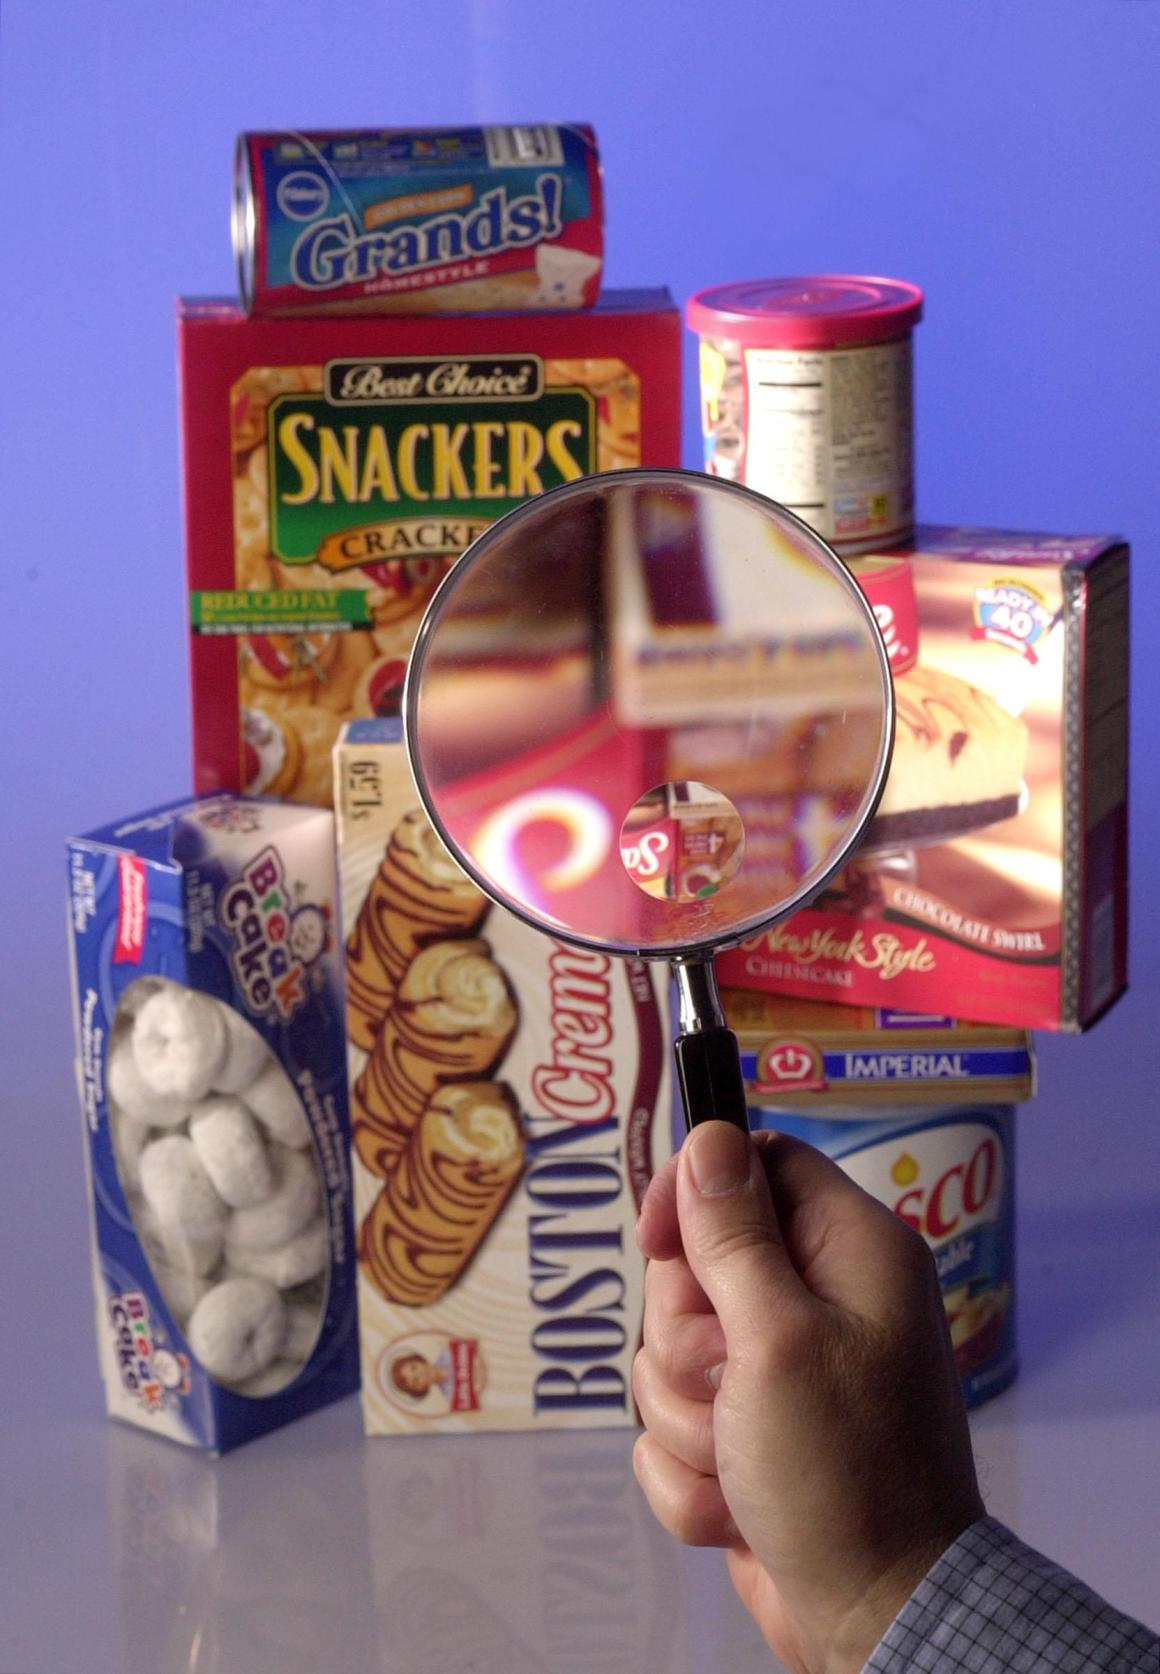 Transitioning away from trans fats